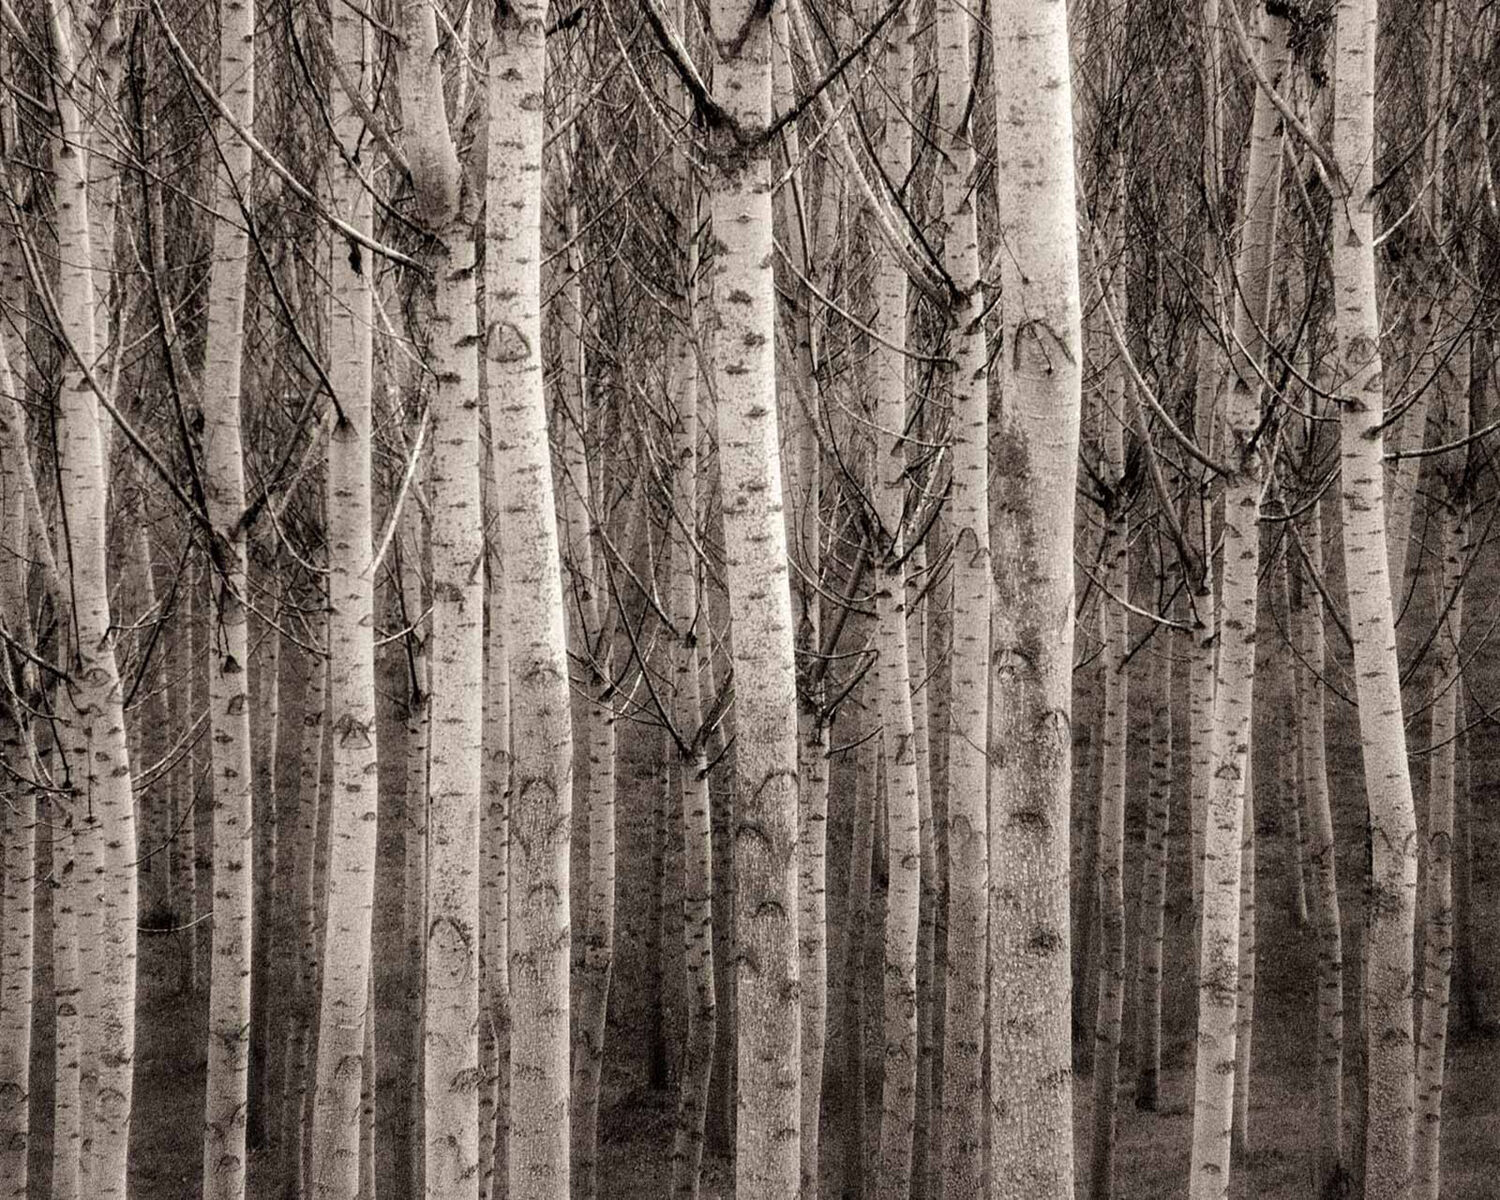 Poplar Tree Trunks